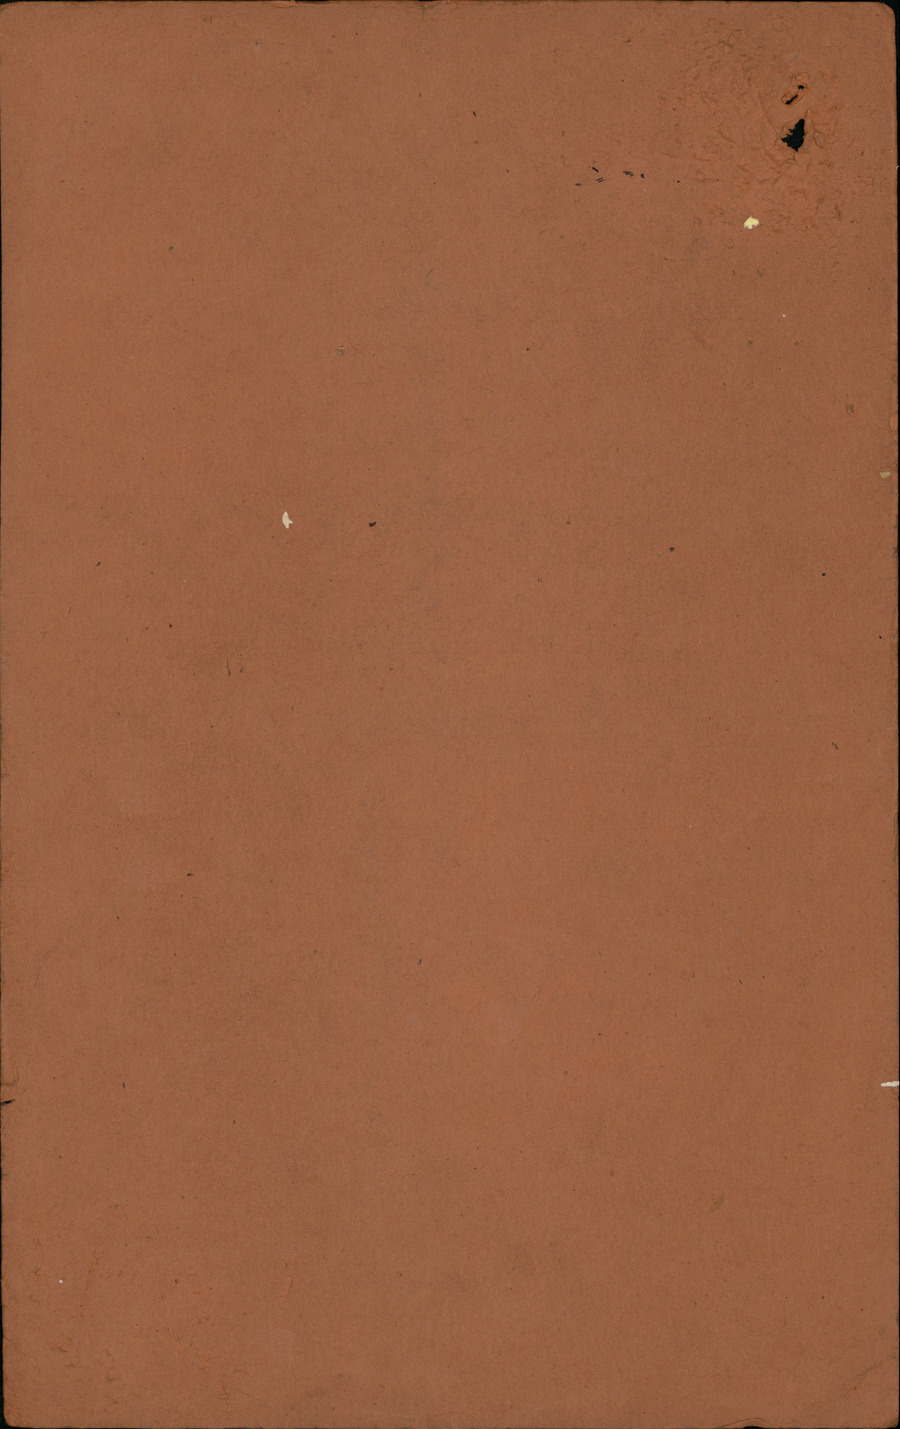 COFFEY, John - WW1 2/2798 - DPF [Duplicate Personnel File]